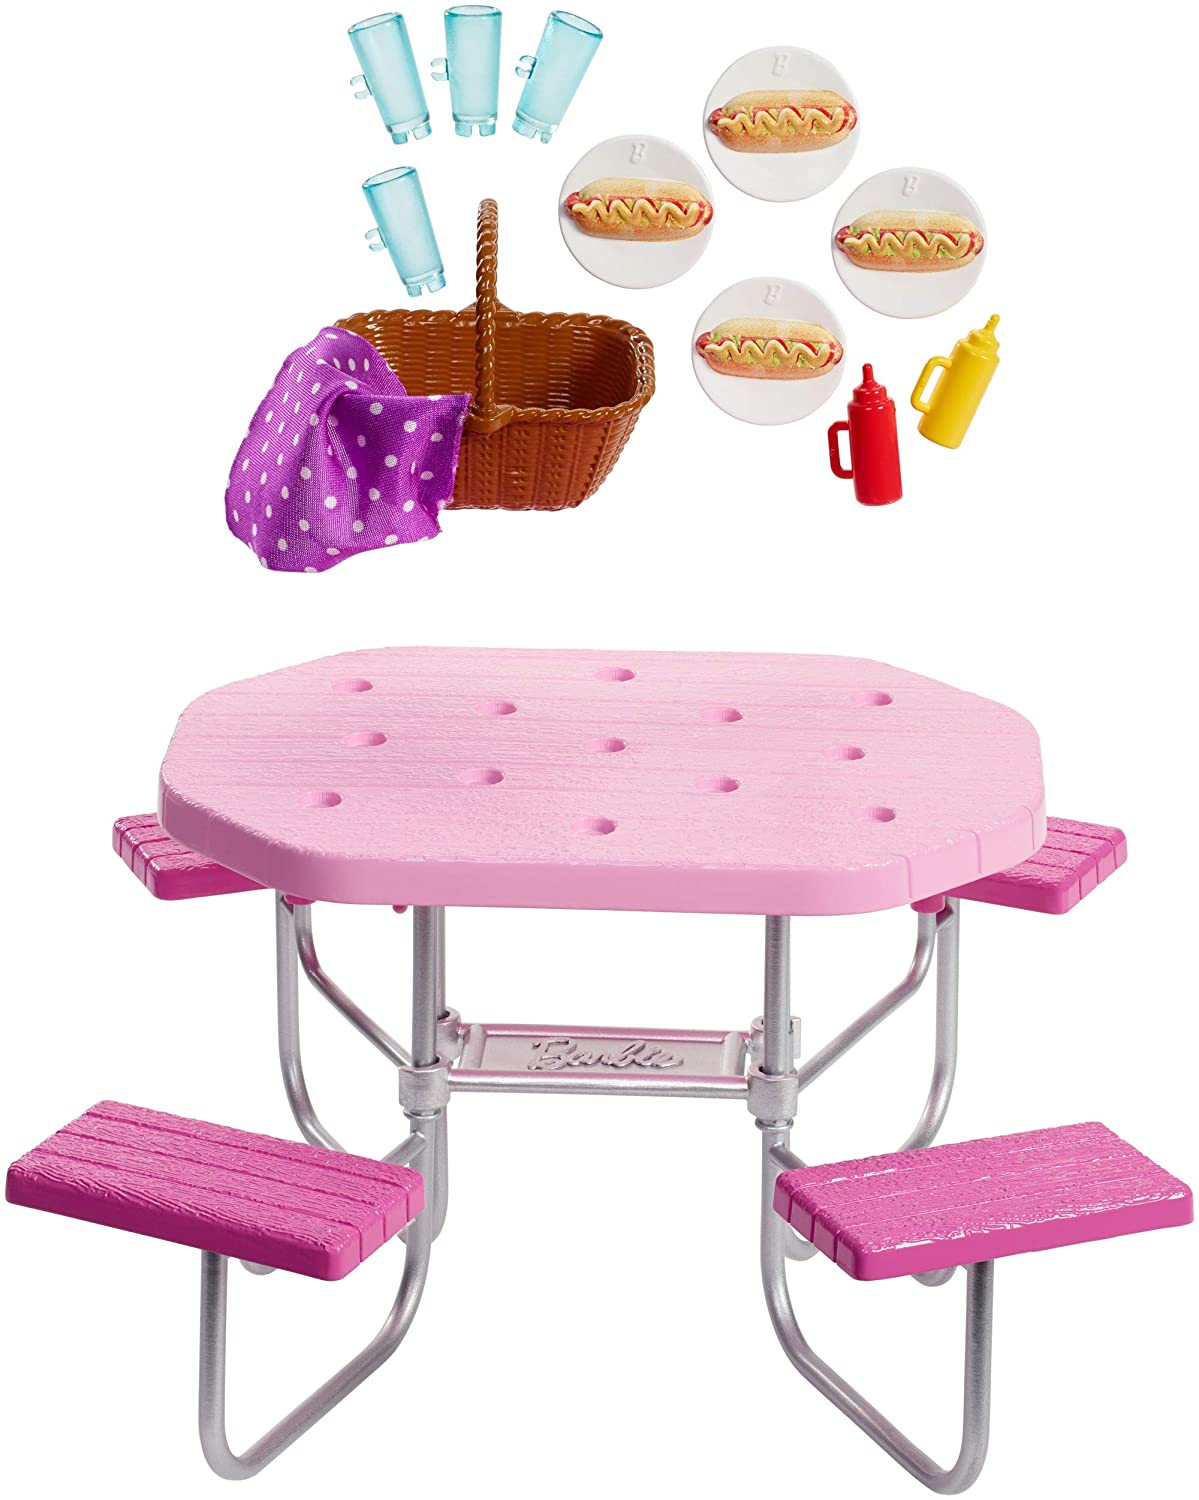 Barbie Picnic Table Playset